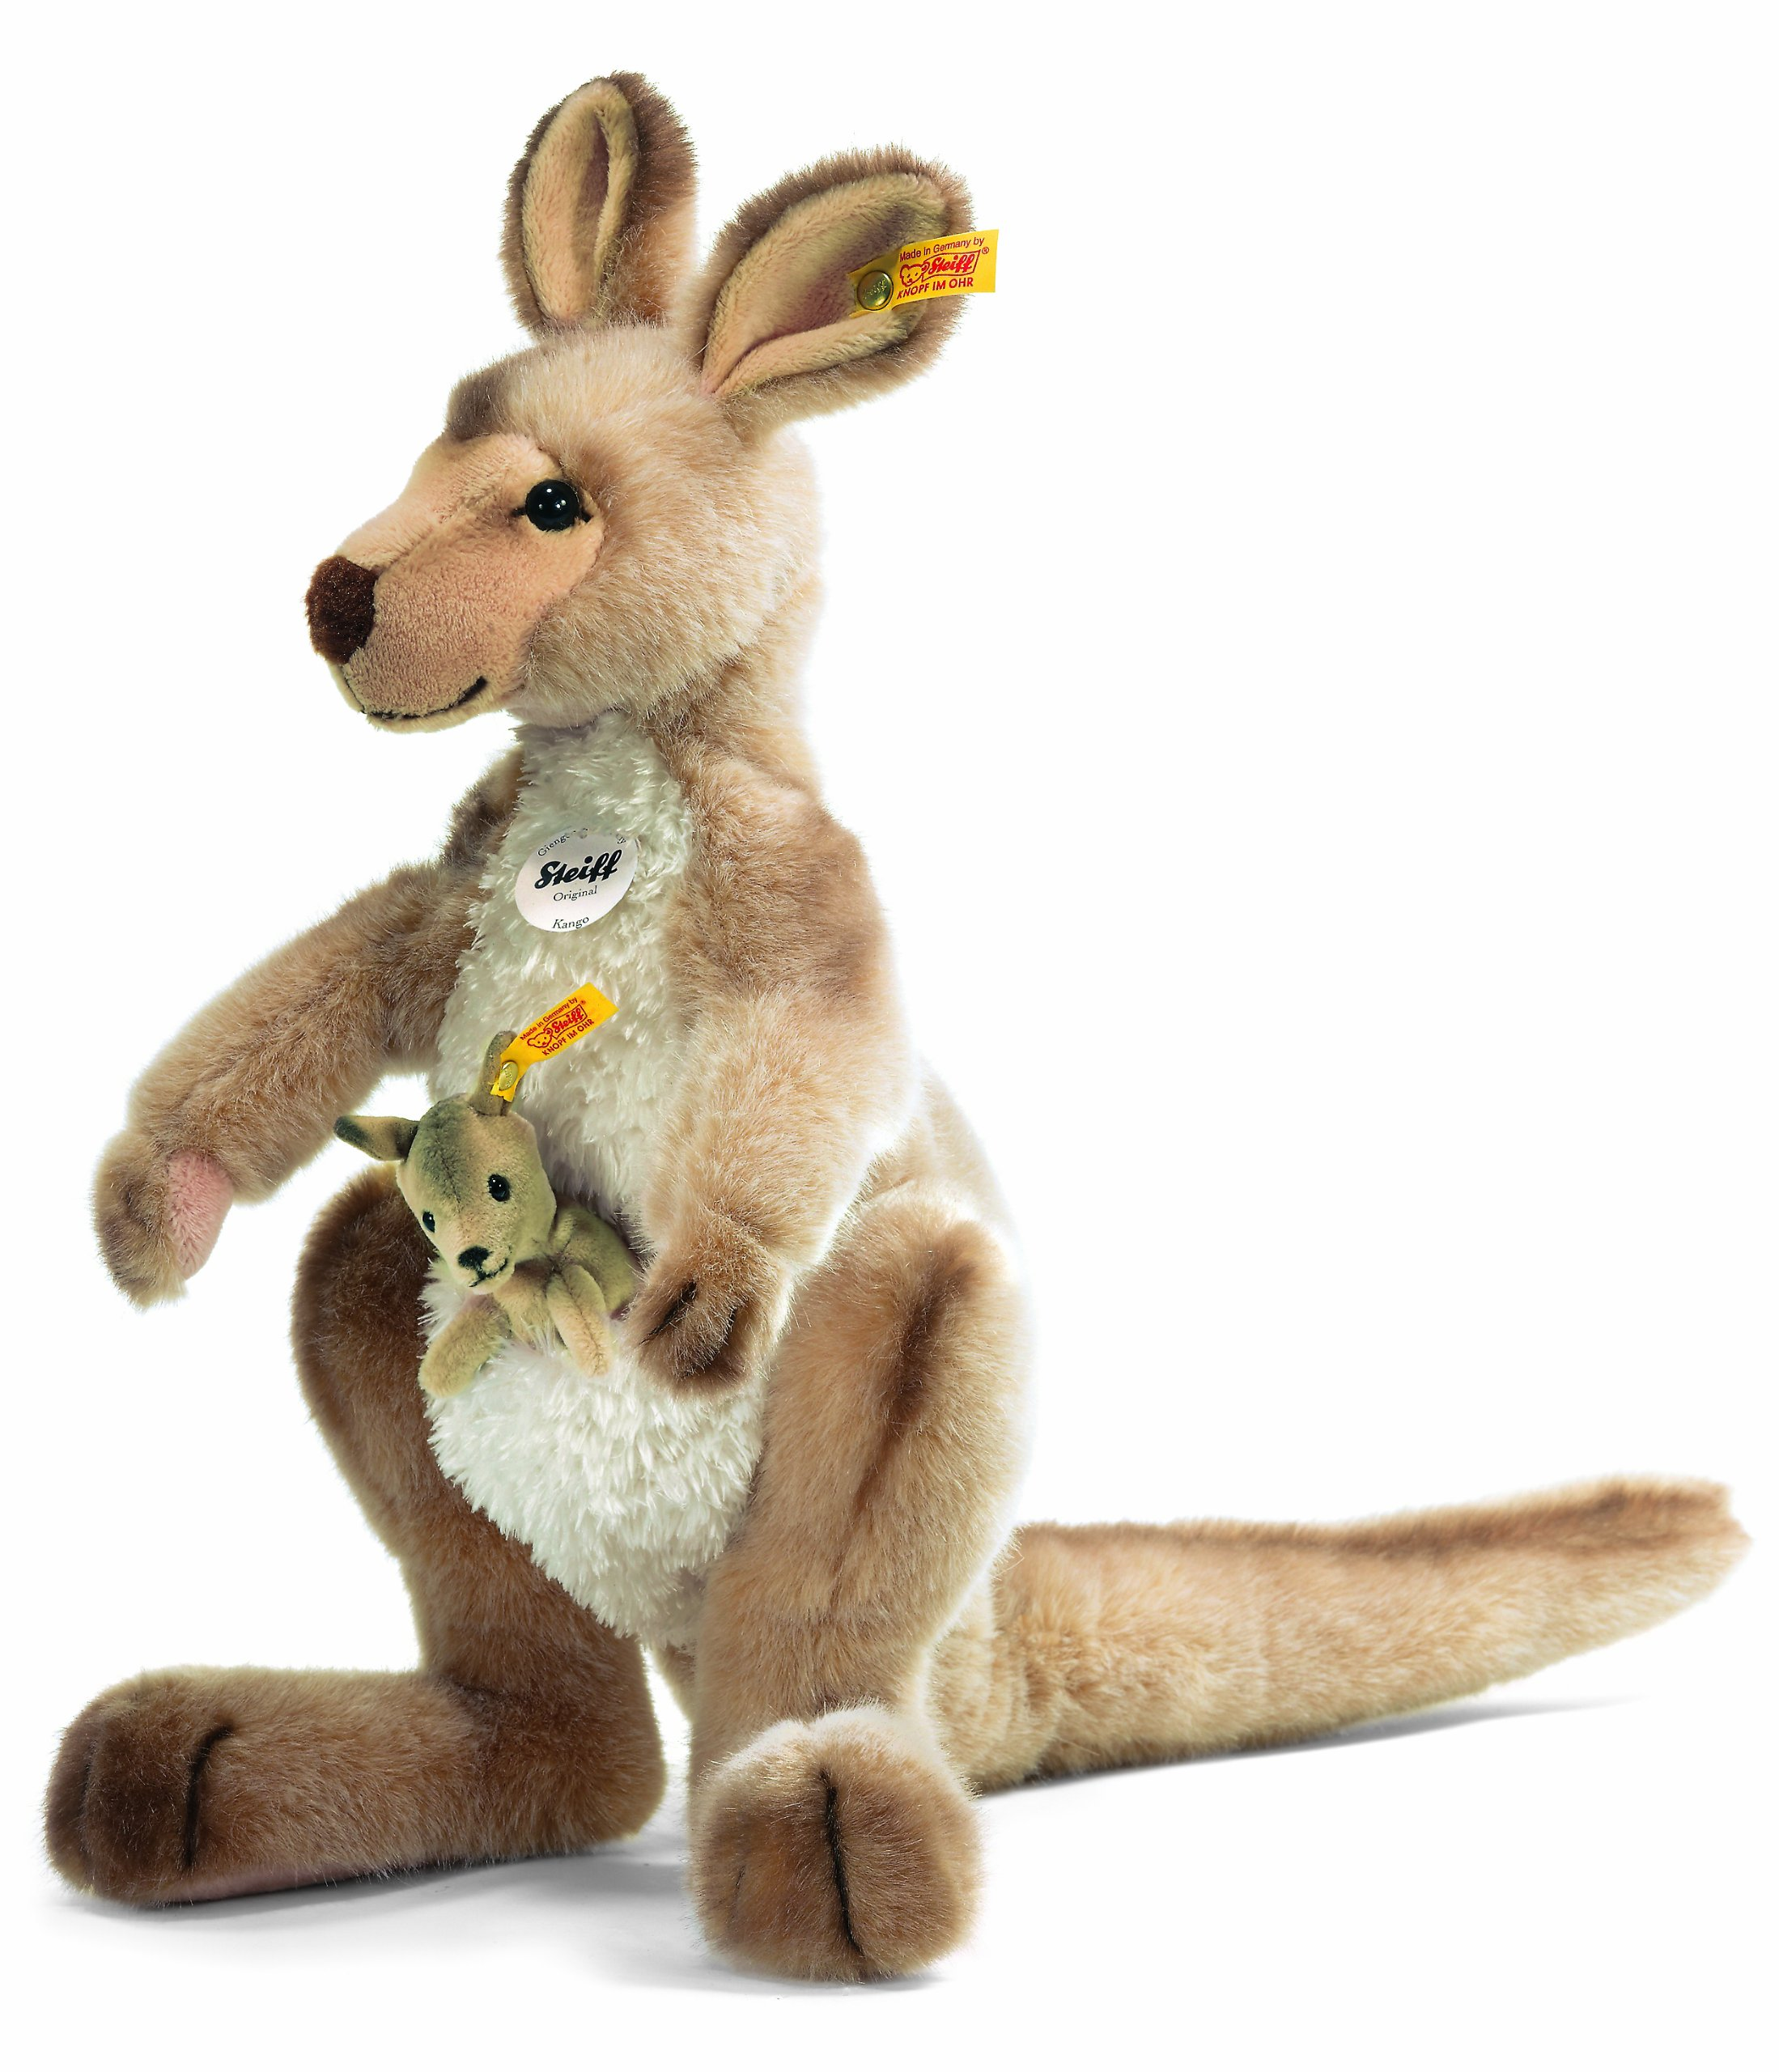 Steiff 064623 Kango Kangaroo Plush Animal Toy, Beige Tipped by Steiff